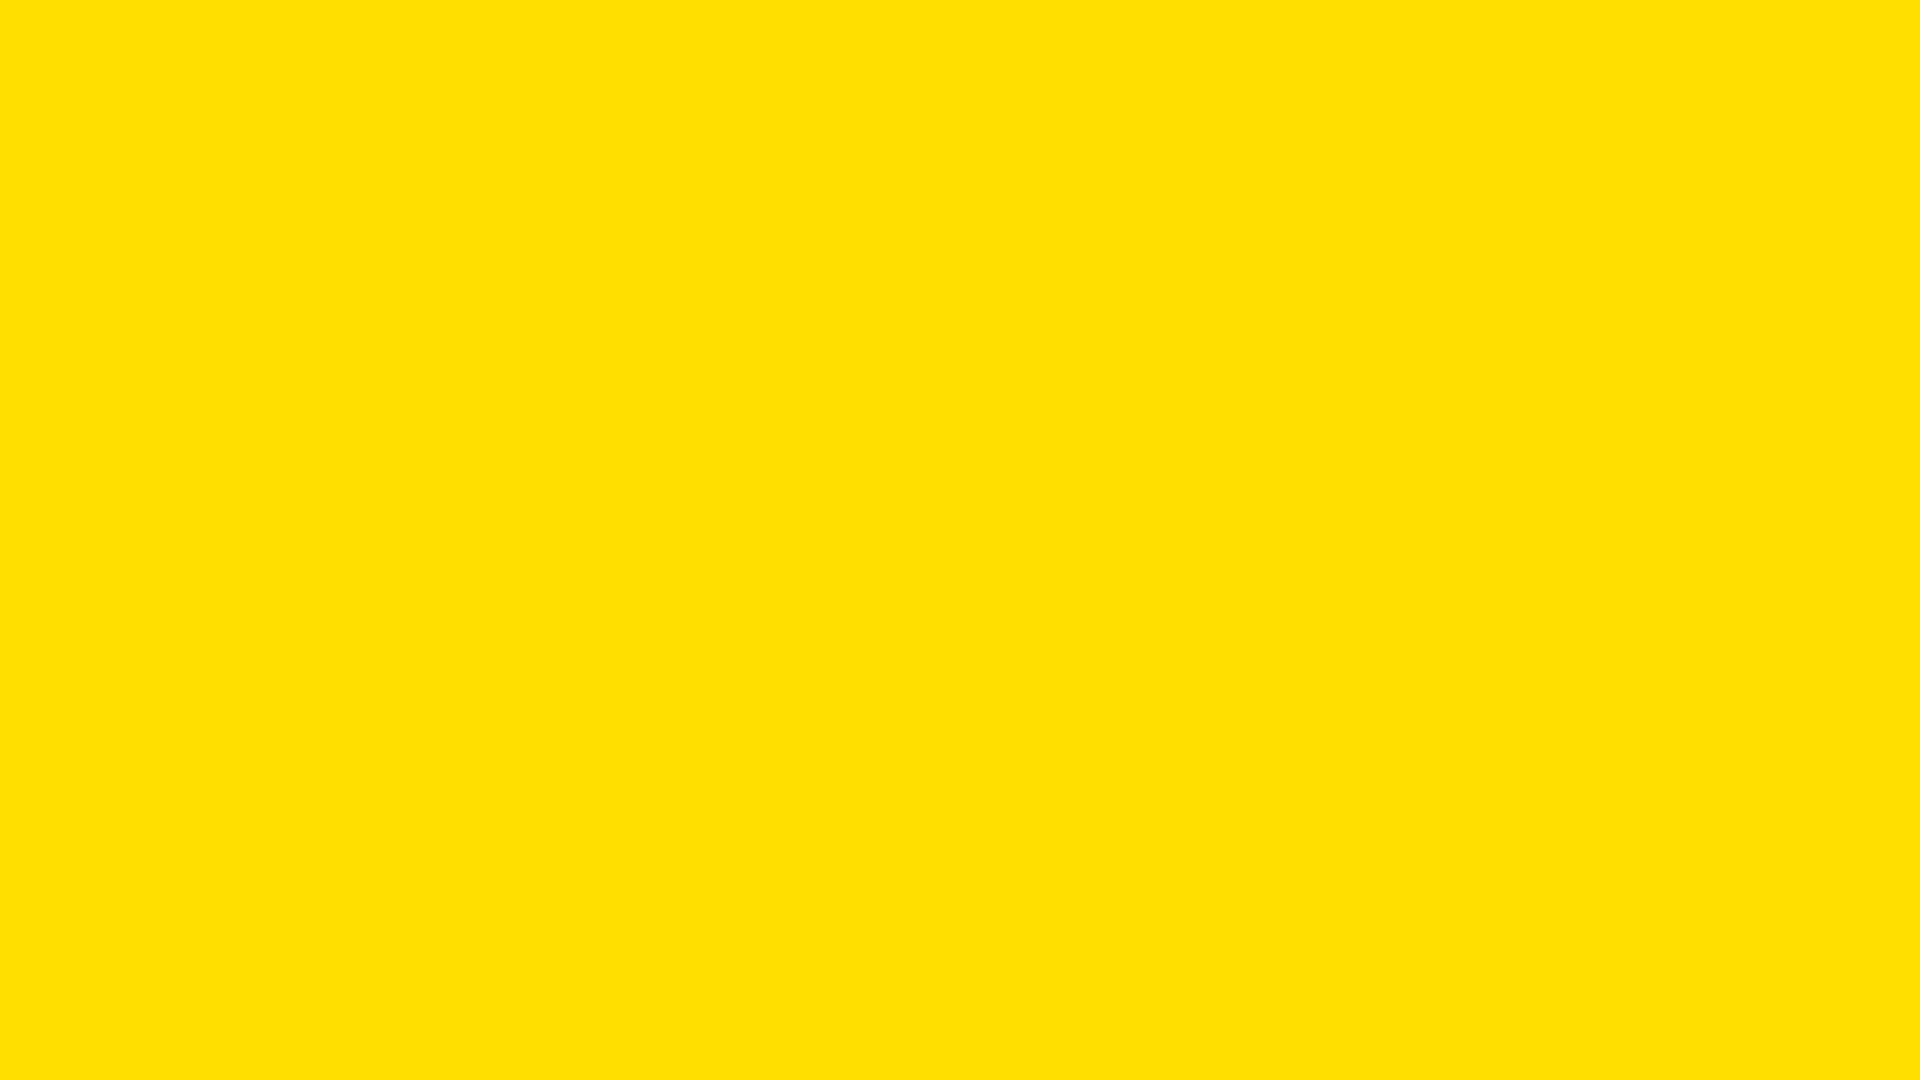 1920x1080 Yellow Pantone Solid Color Background